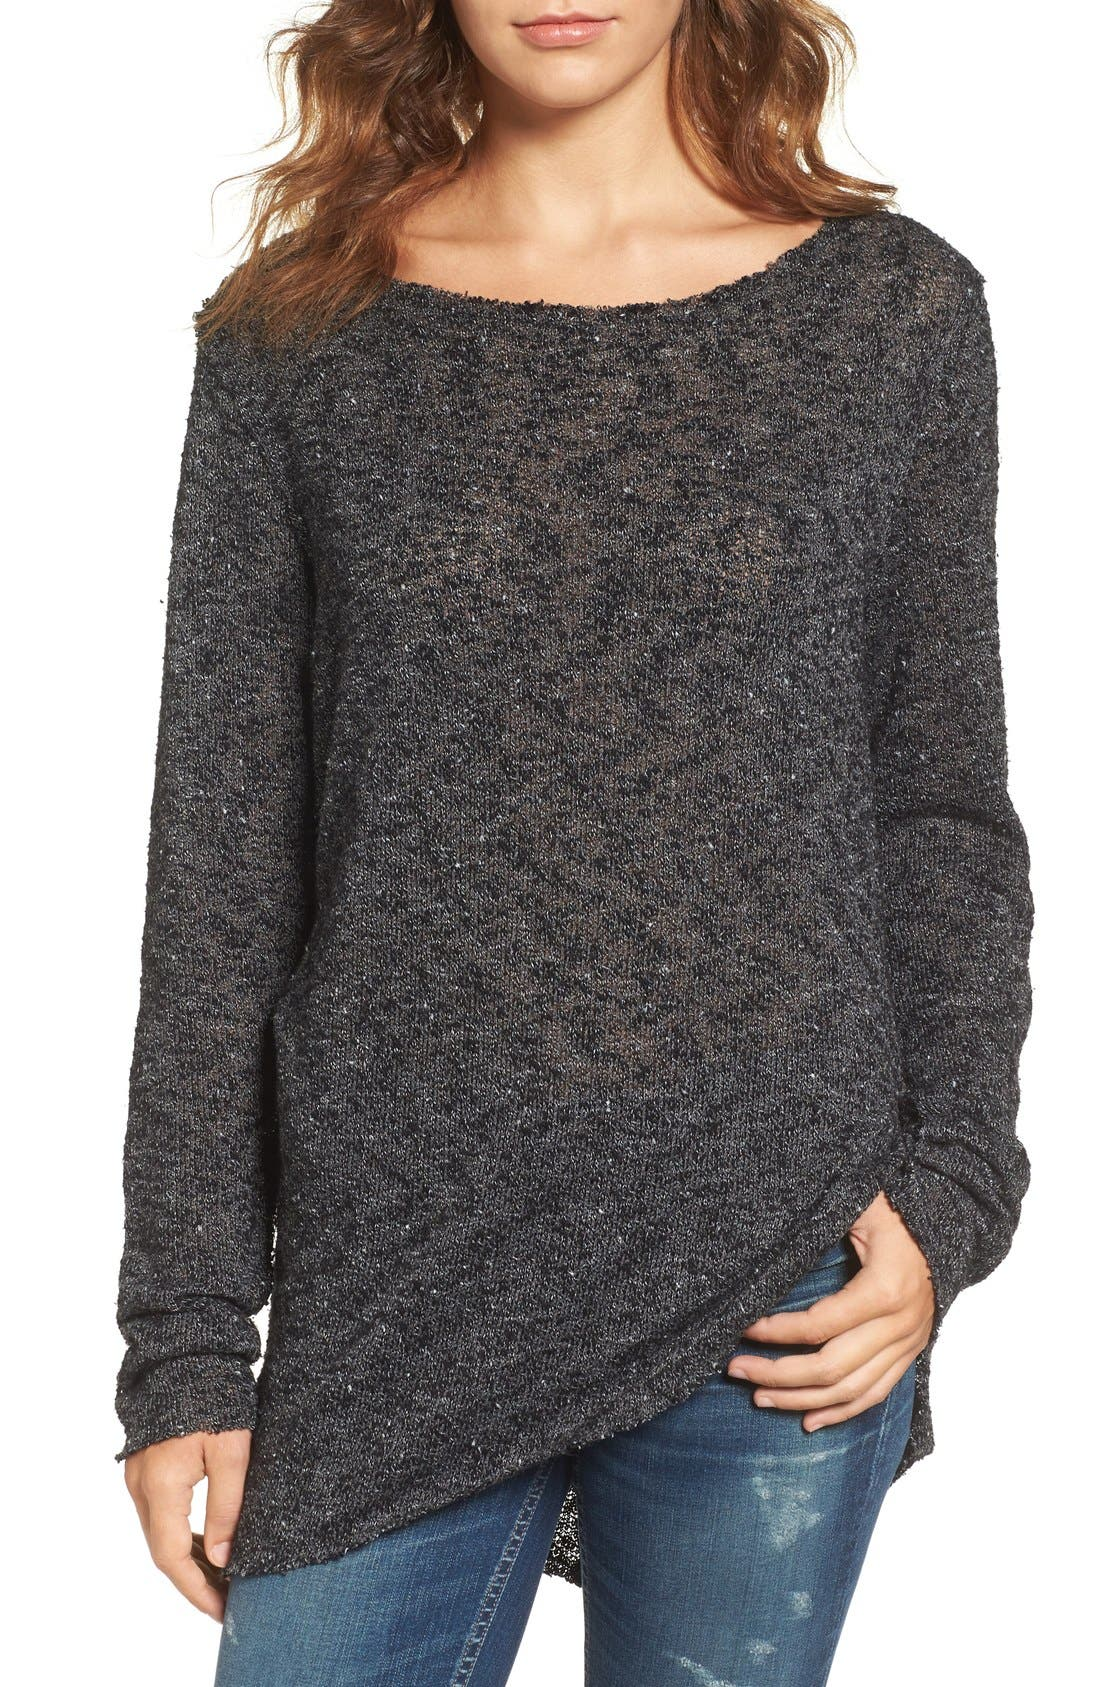 Alternate Image 1 Selected - Strom Carr Asymmetrical Tunic Sweater